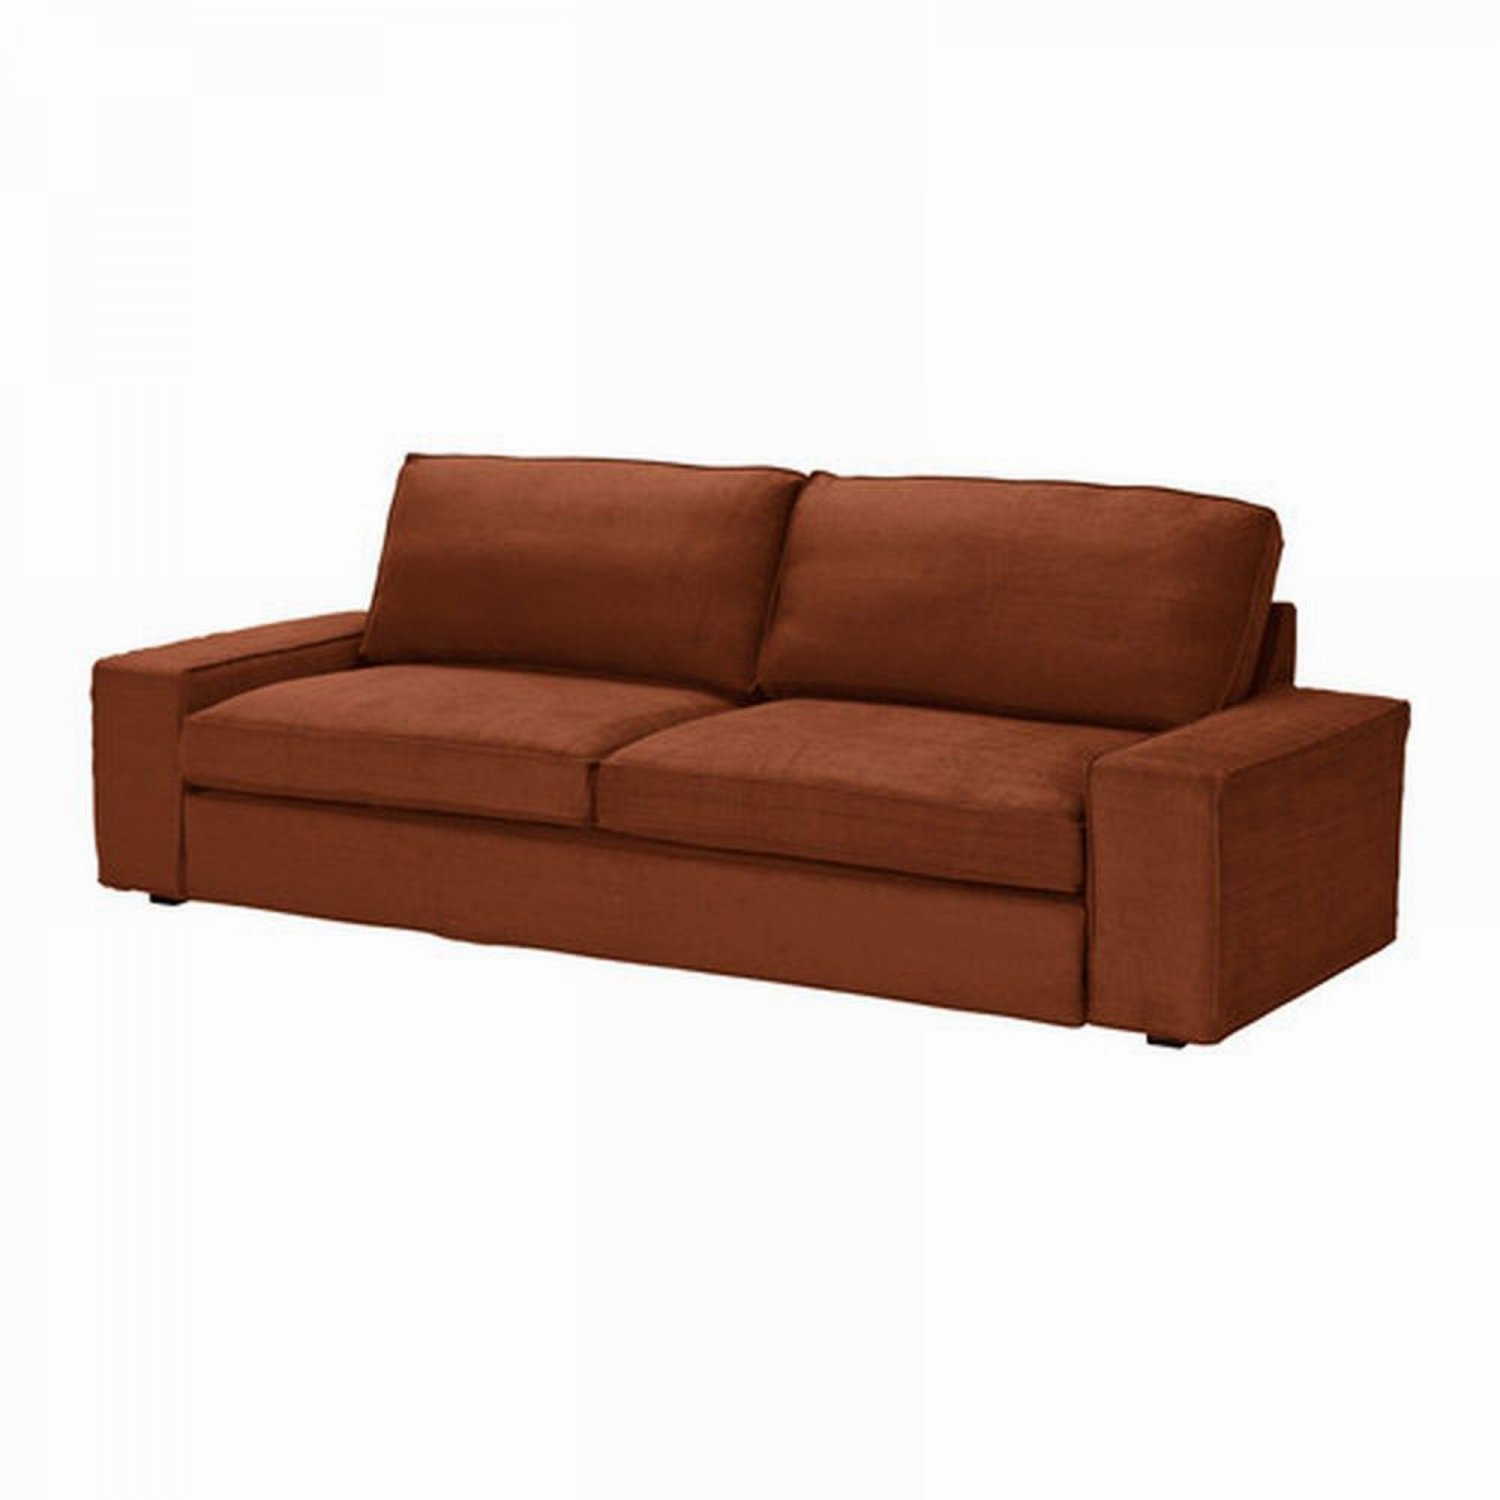 ikea kivik sofa bed slipcover cover tullinge rust brown. Black Bedroom Furniture Sets. Home Design Ideas